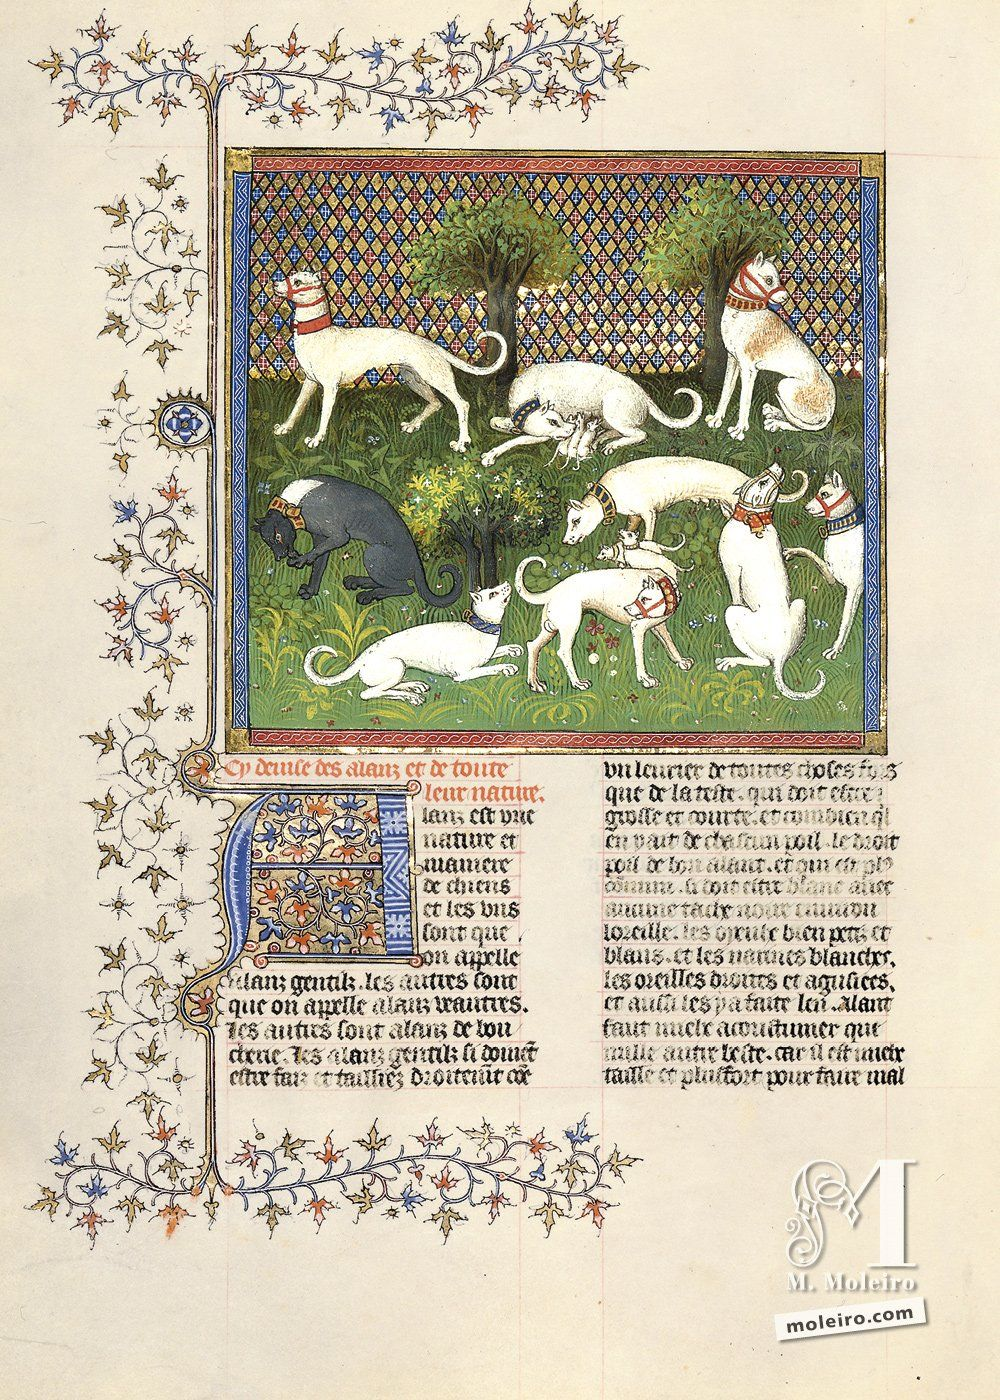 Of alaunts and their Nature - 45v. Livre de la Chasse, by Gaston Fébus (Français 616, Paris, early 15th c.) Bibliothèque nationale de France, Paris BnF